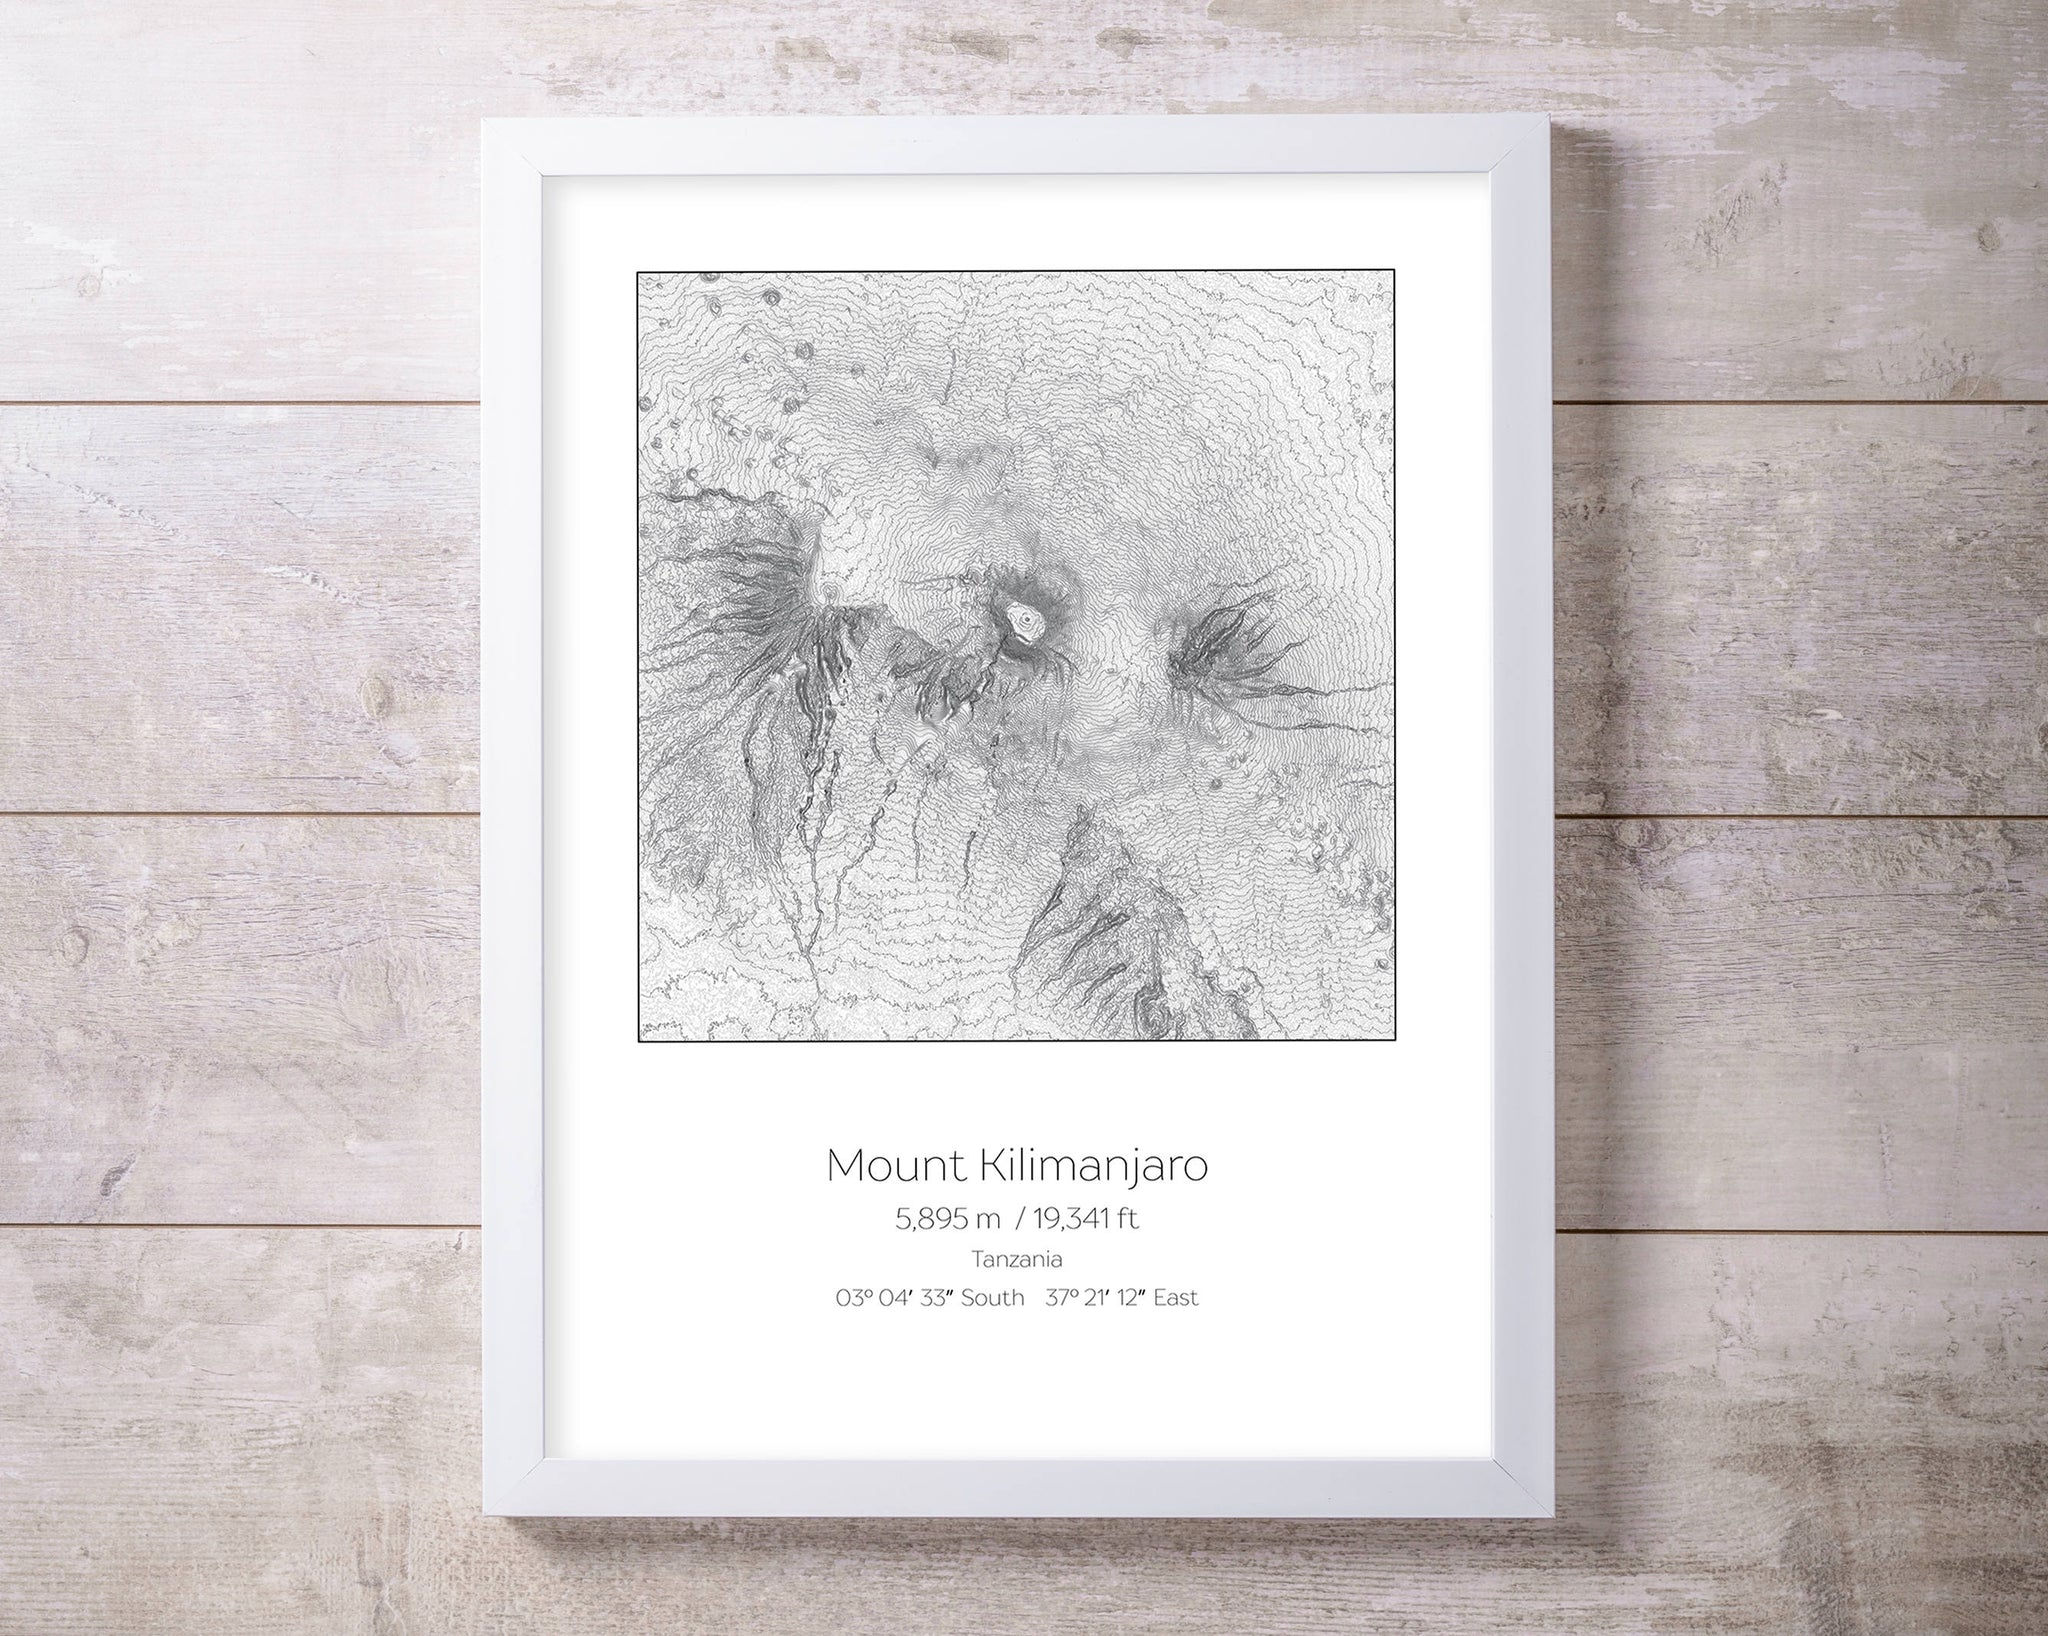 Mt Kilimanjaro, Tanzania Topography Elevation Print Wall Art